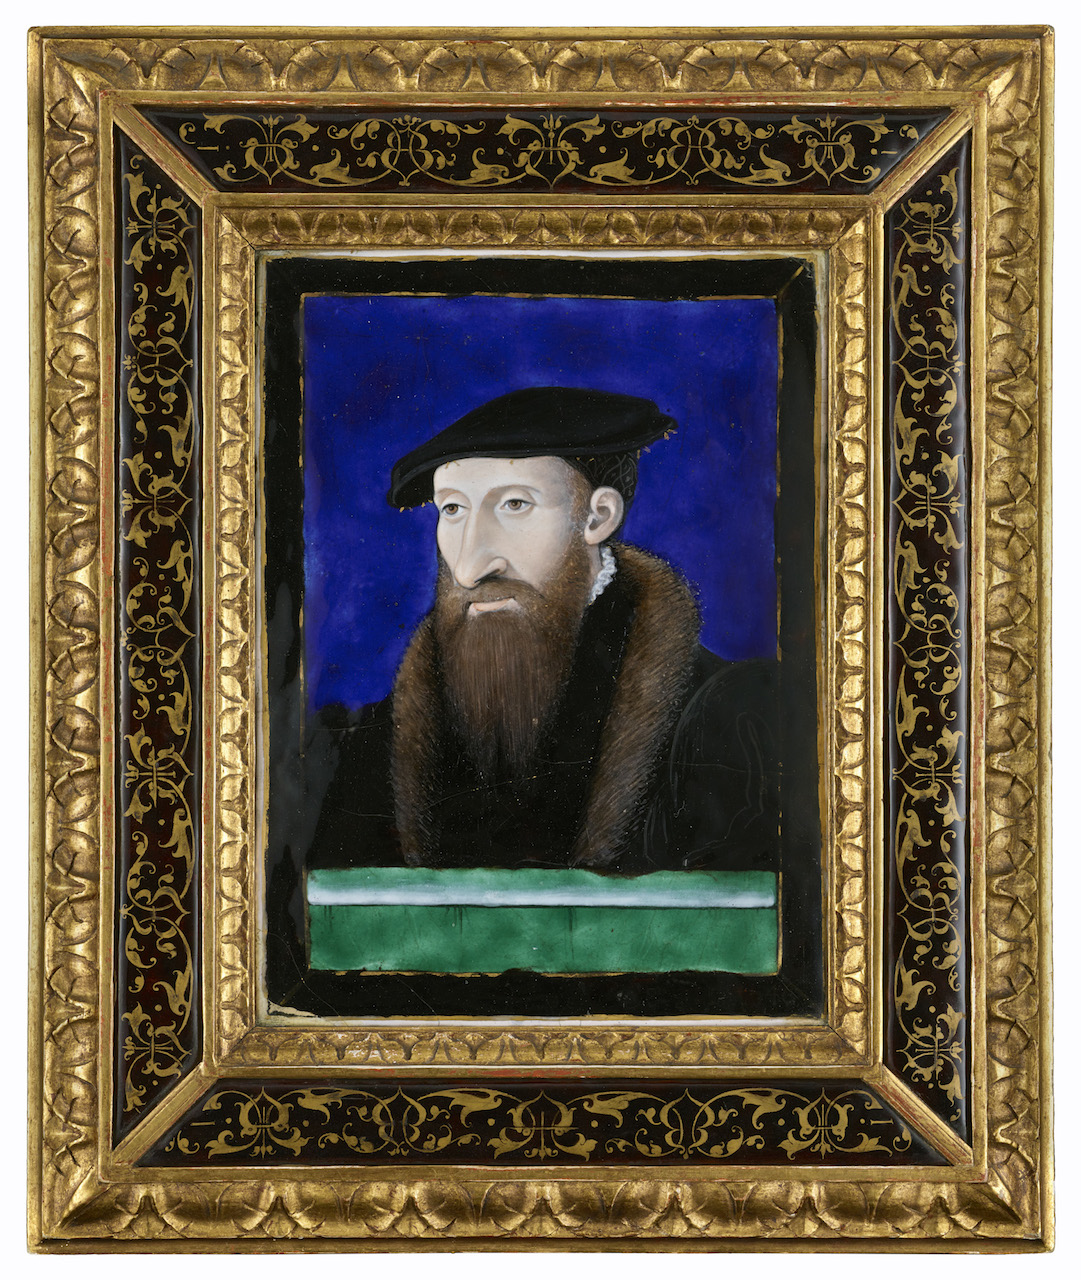 "Léonard Limousin (or Limosin), ""Portrait of a Bearded Man (Guillaume Farel?)"" (1546), enamel on copper, 7 9/16 x 5 5/8 inches (courtesy The Frick Collection, photo by Michael Bodycomb)"